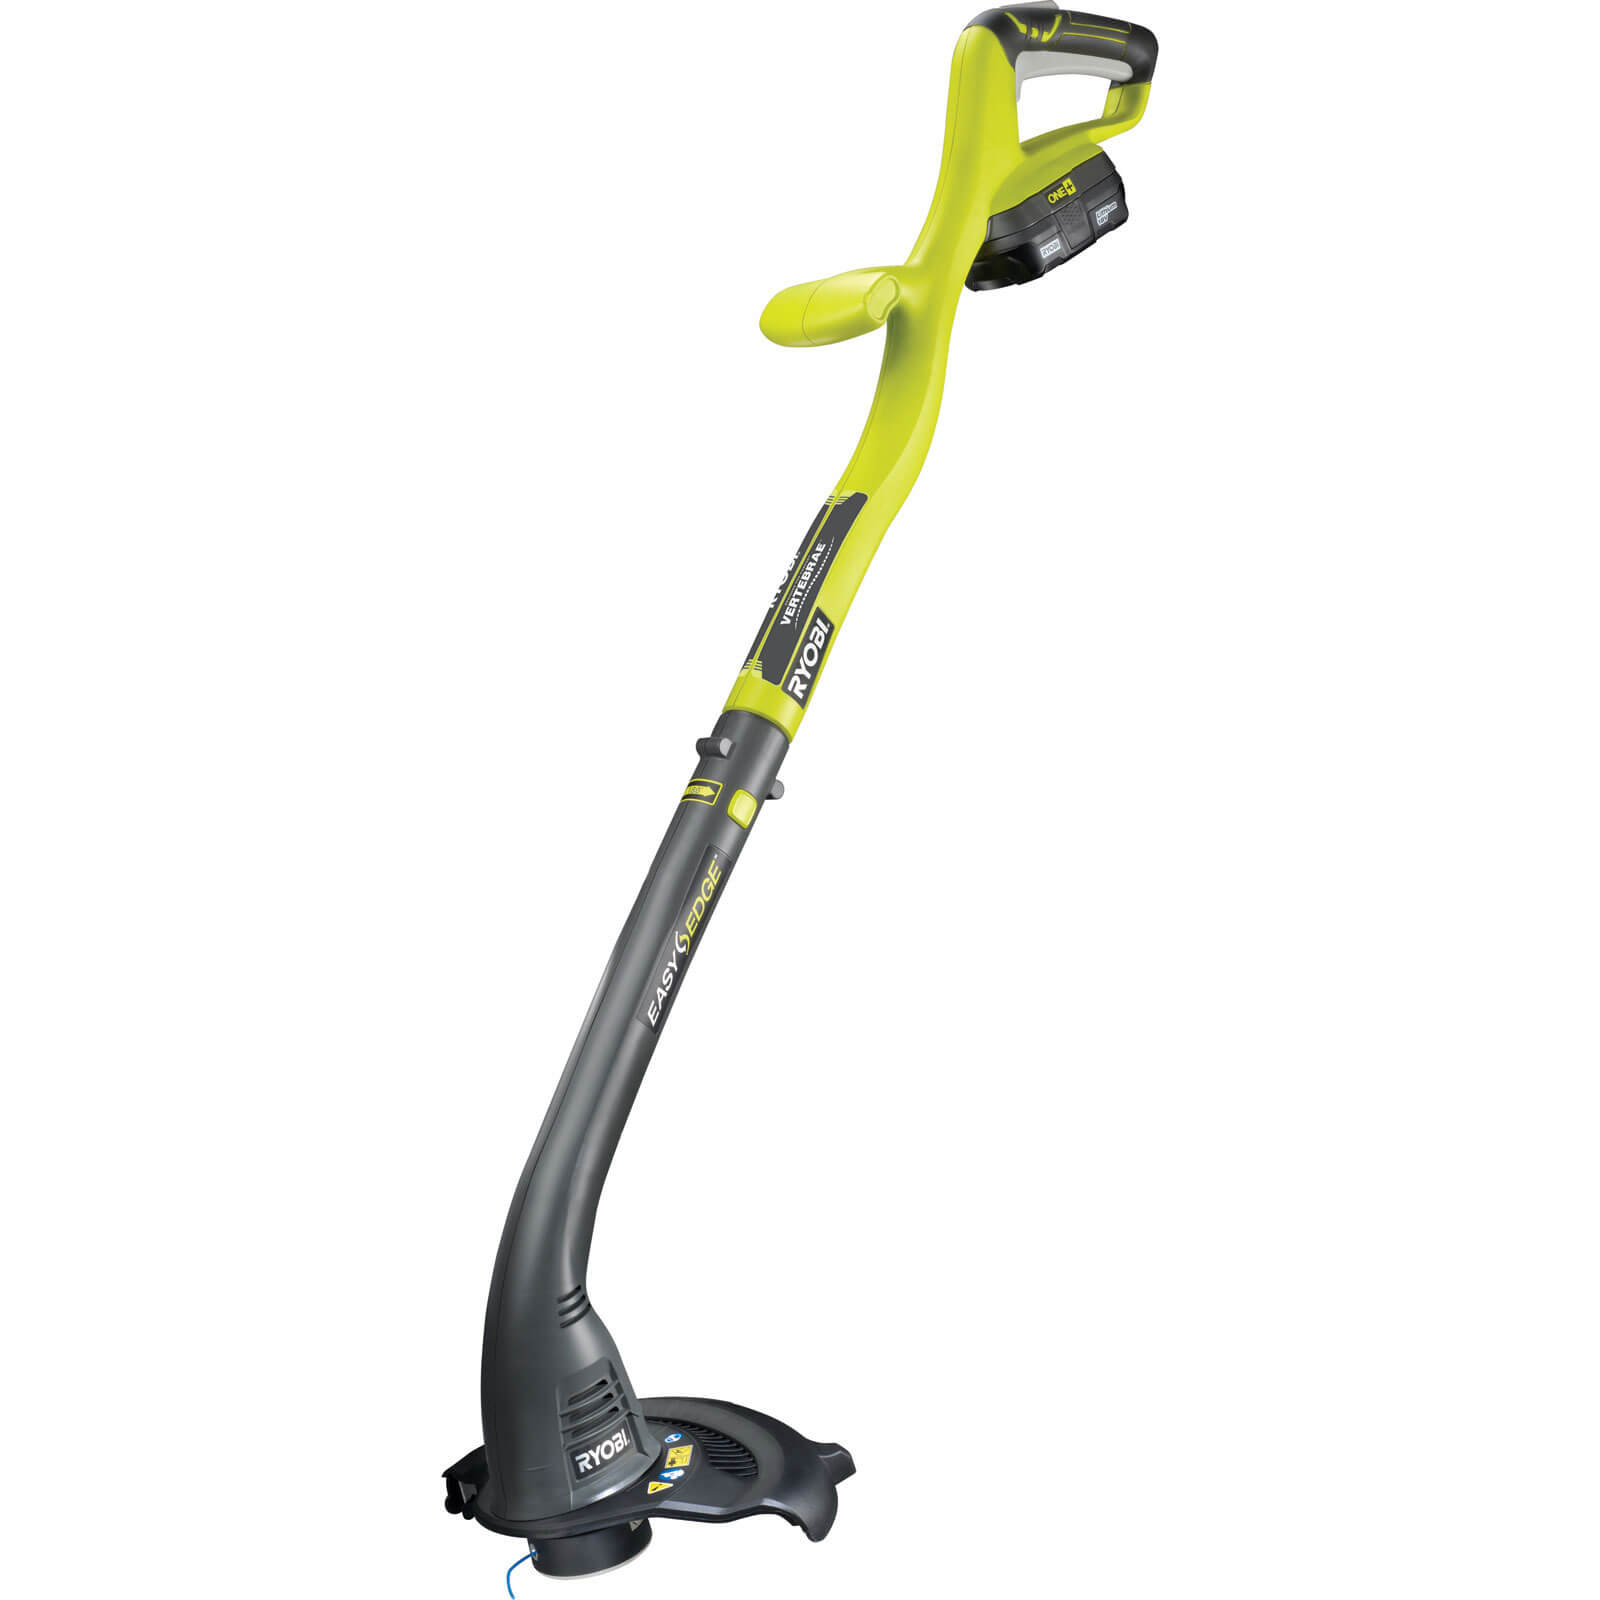 Ryobi RLT1825LI ONE+ 18v Cordless Grass Trimmer 250mm Cut Width + 1 Lithium Ion Battery 1.3Ah